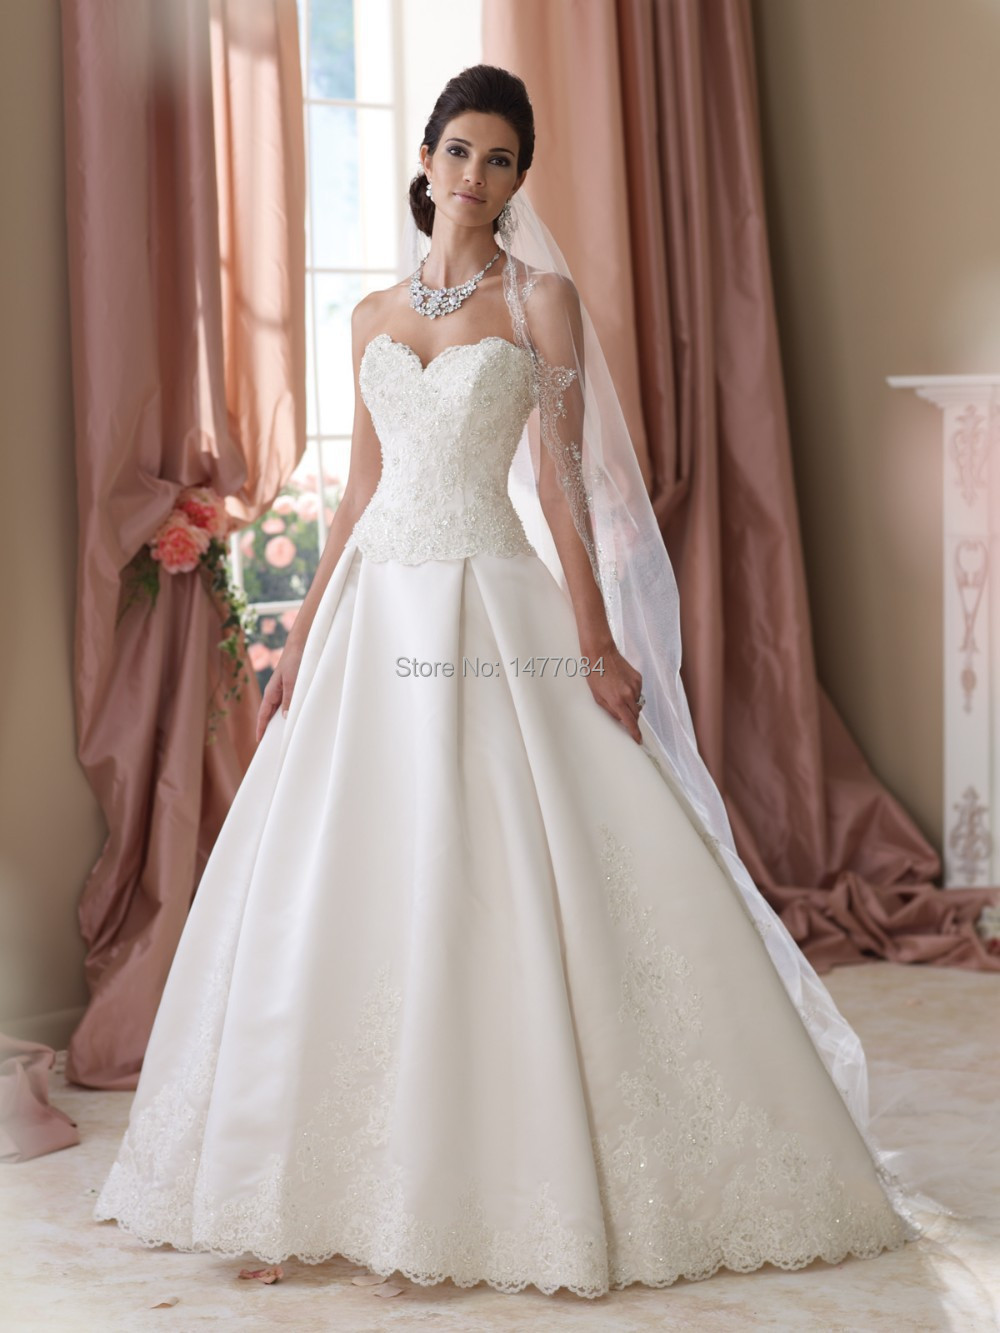 Popular detachable skirt wedding dress buy cheap for Unique wedding dress styles